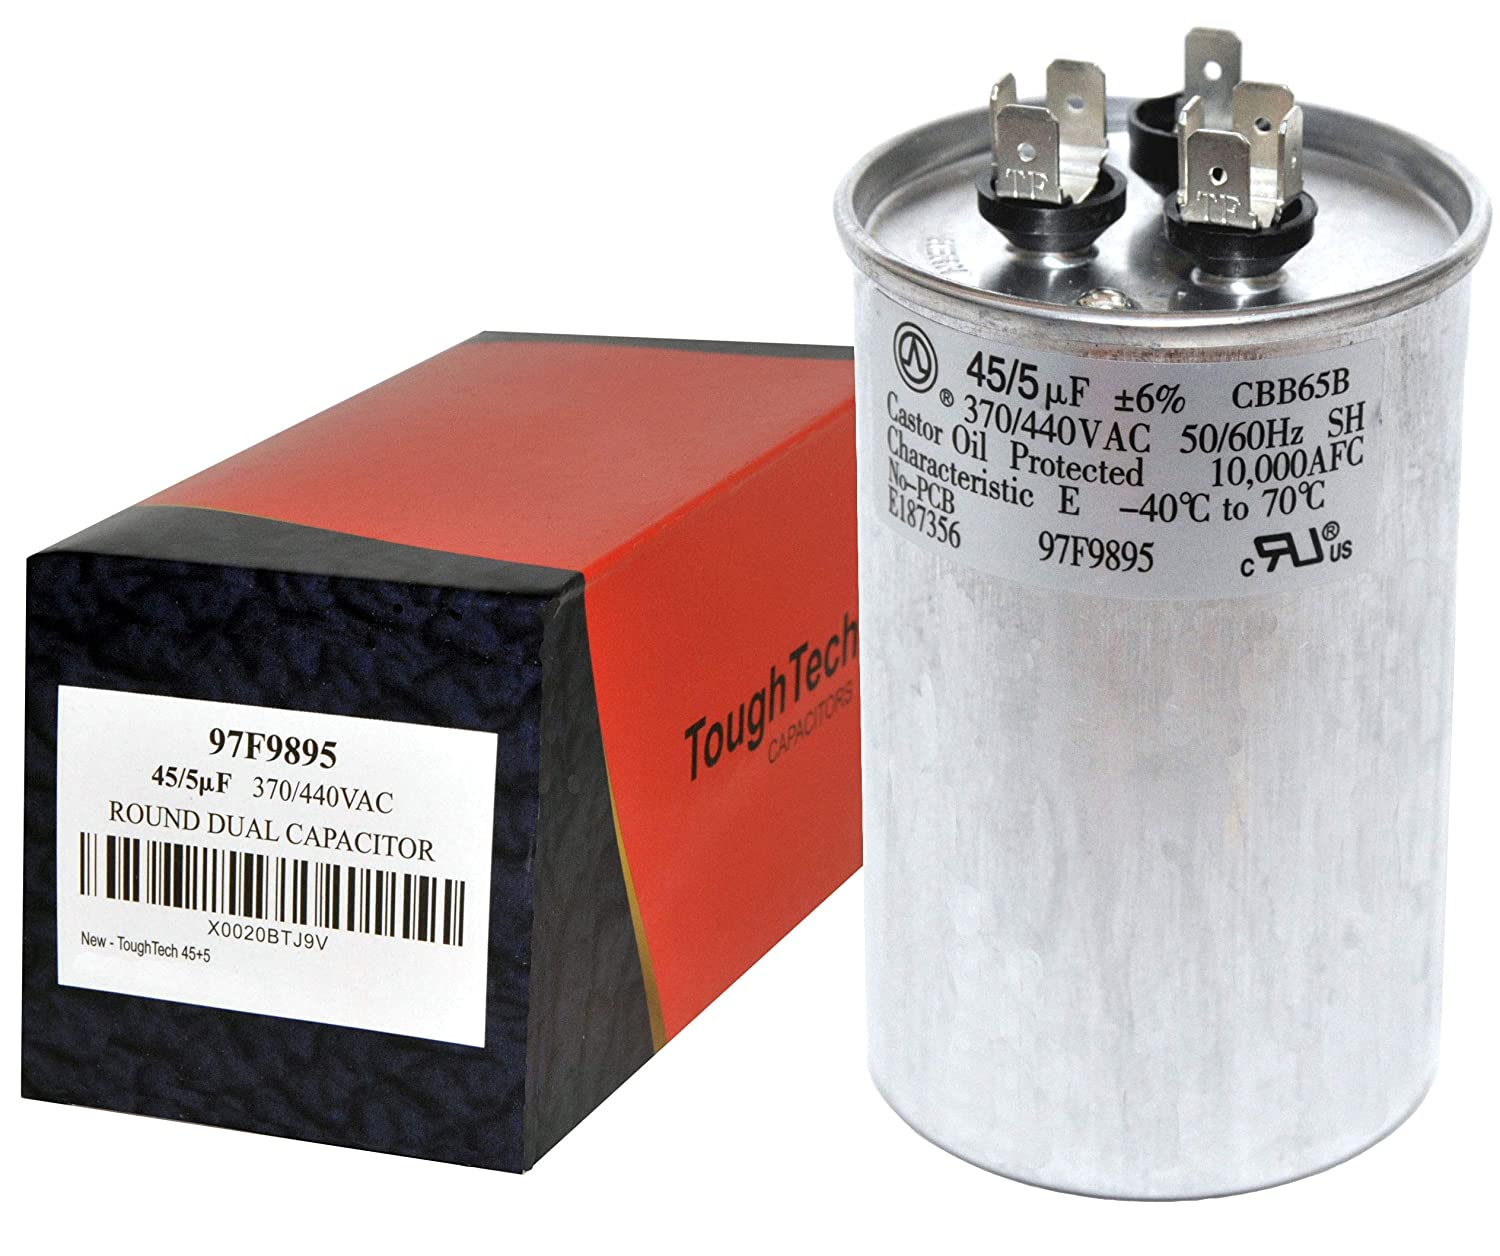 ToughTech 45+5 uf MFD 97F9895 Dual Run Round Capacitor 370 or 440 VAC for Air Conditioner